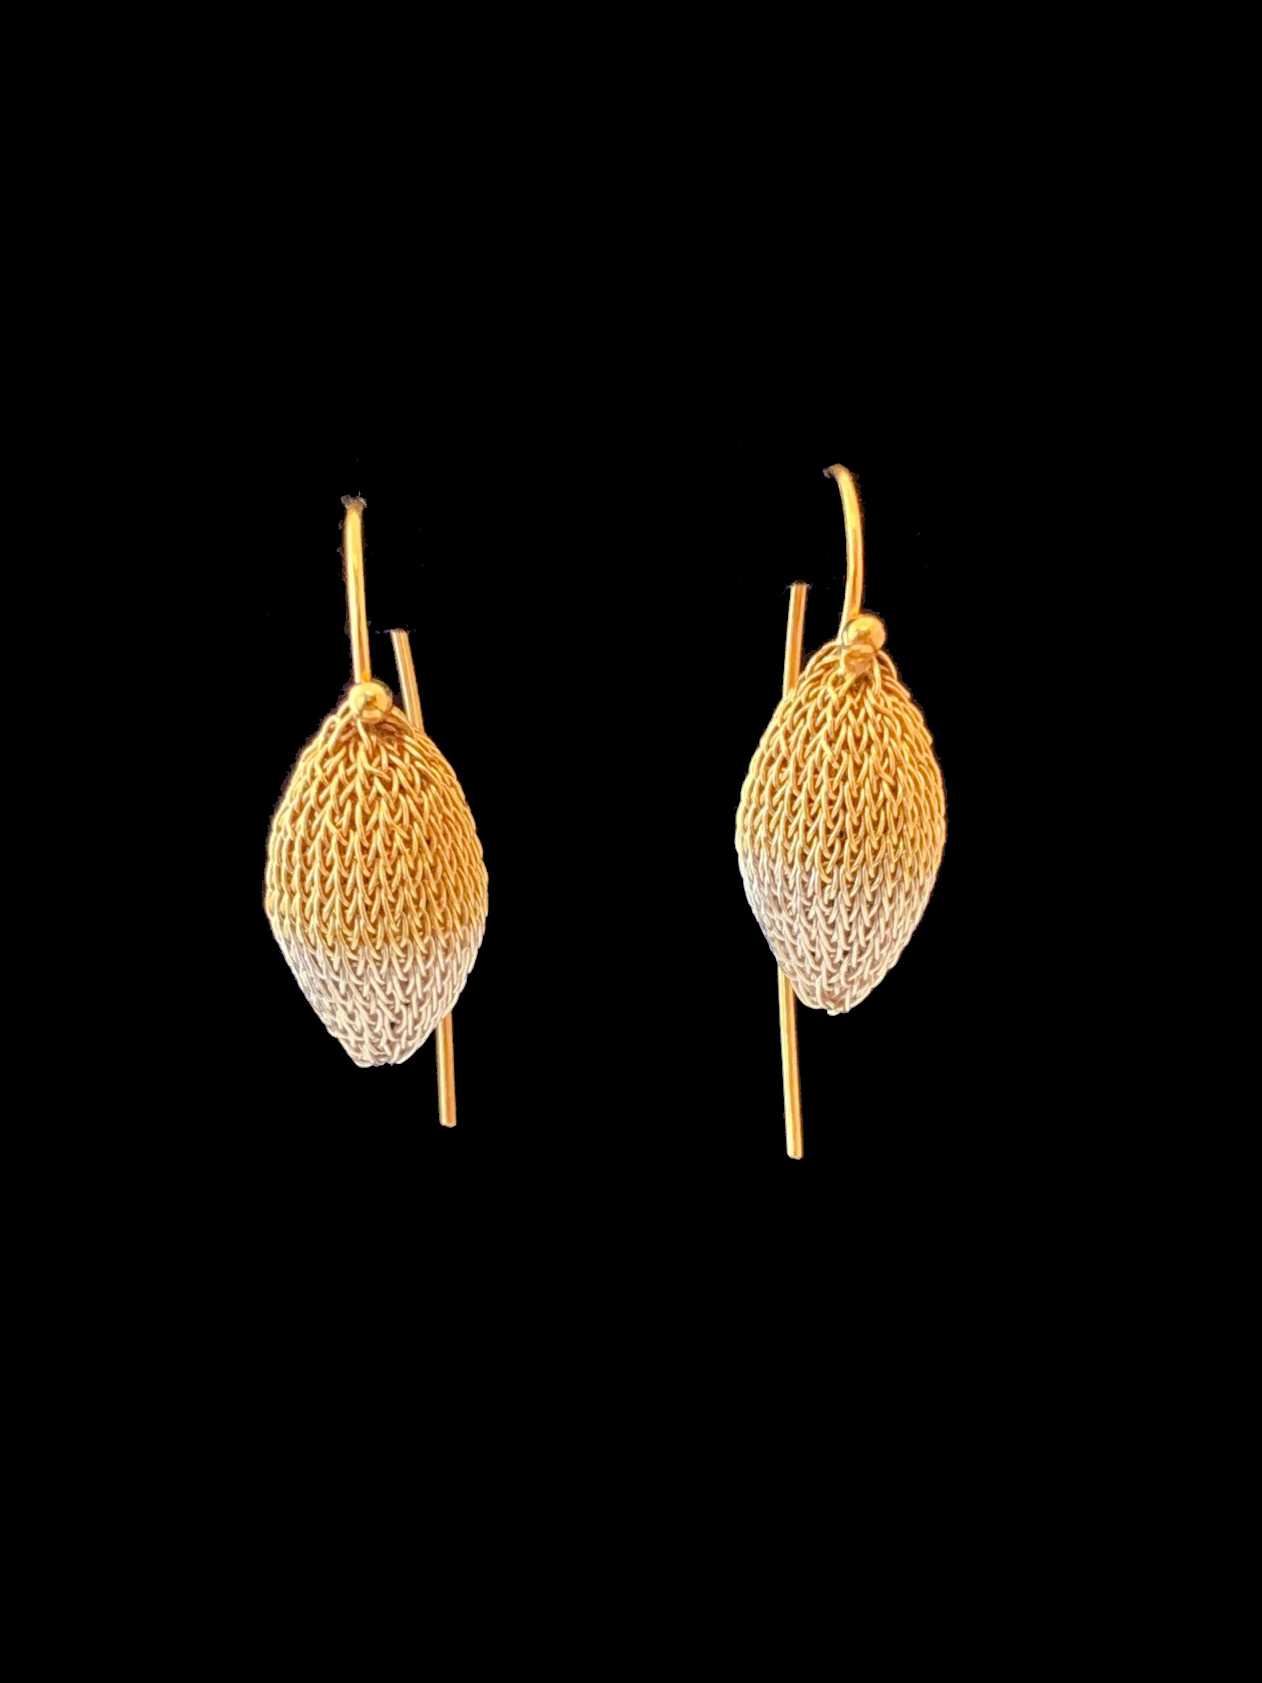 Woven Gold and Silver 'Pod' Earrings (70GW) - Sold